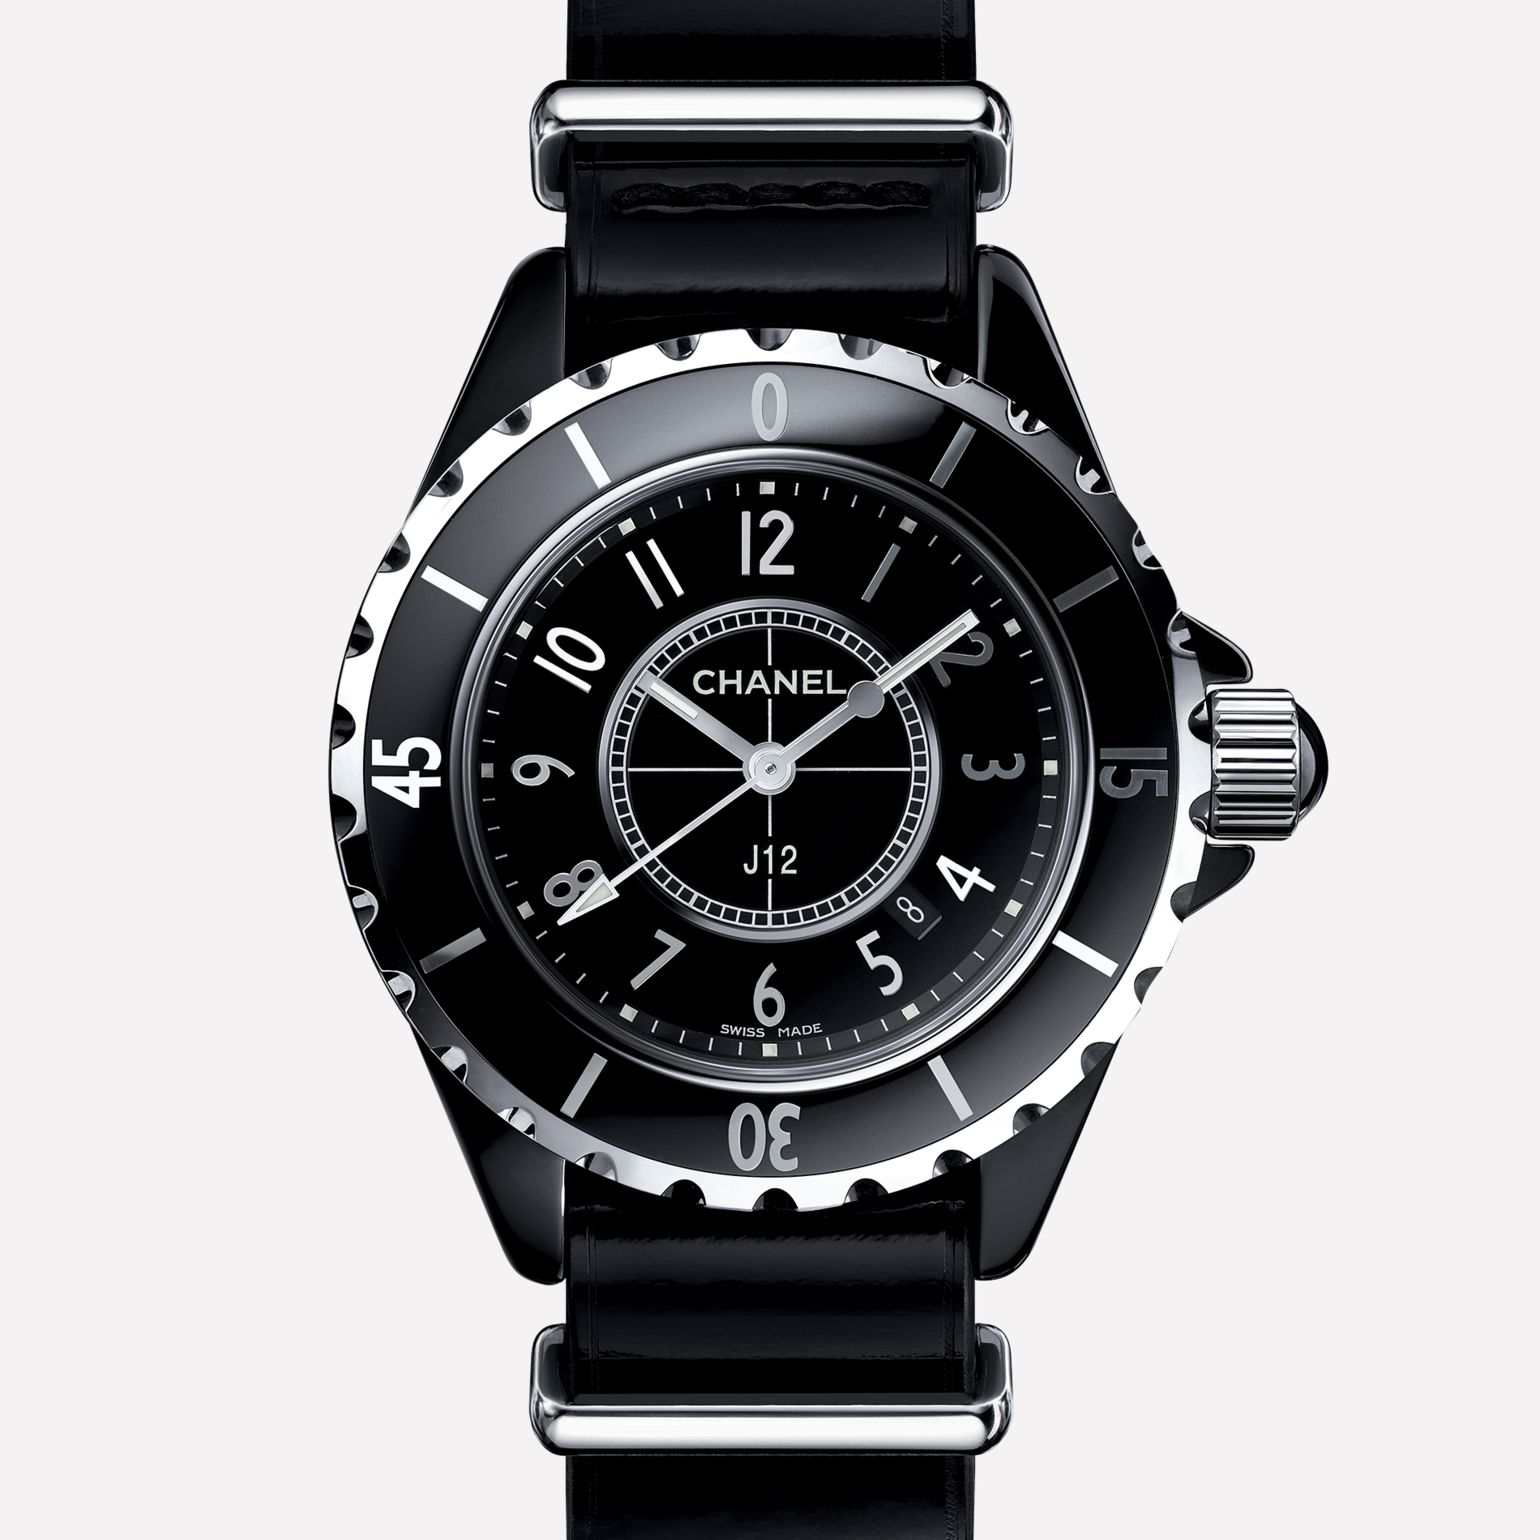 J12-G10 Gloss Watch Black ceramic and steel, patent calfskin strap